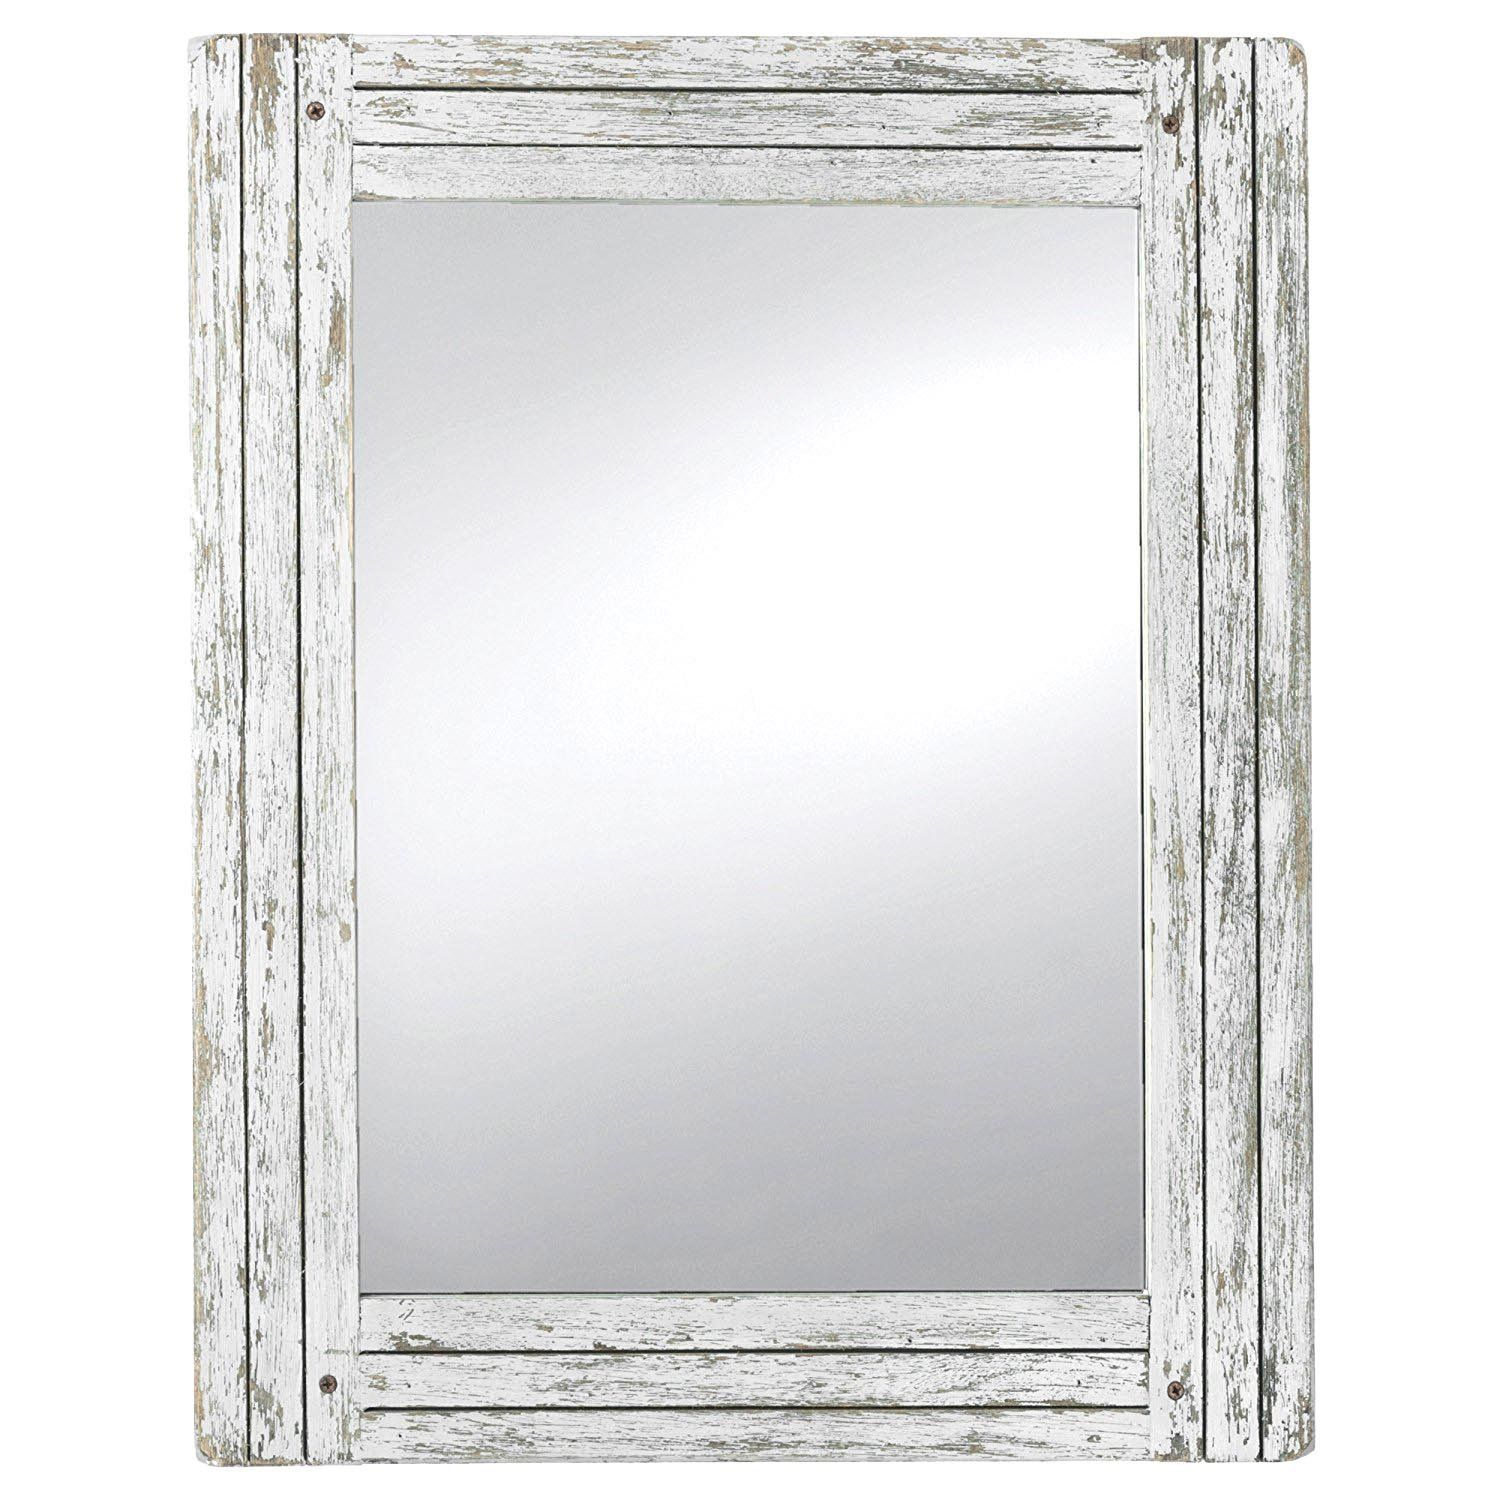 Farmhouse Mirrors Rustic Mirrors Farmhouse Goals In 2020 Wood Framed Mirror Mirror Wall Farmhouse Mirrors